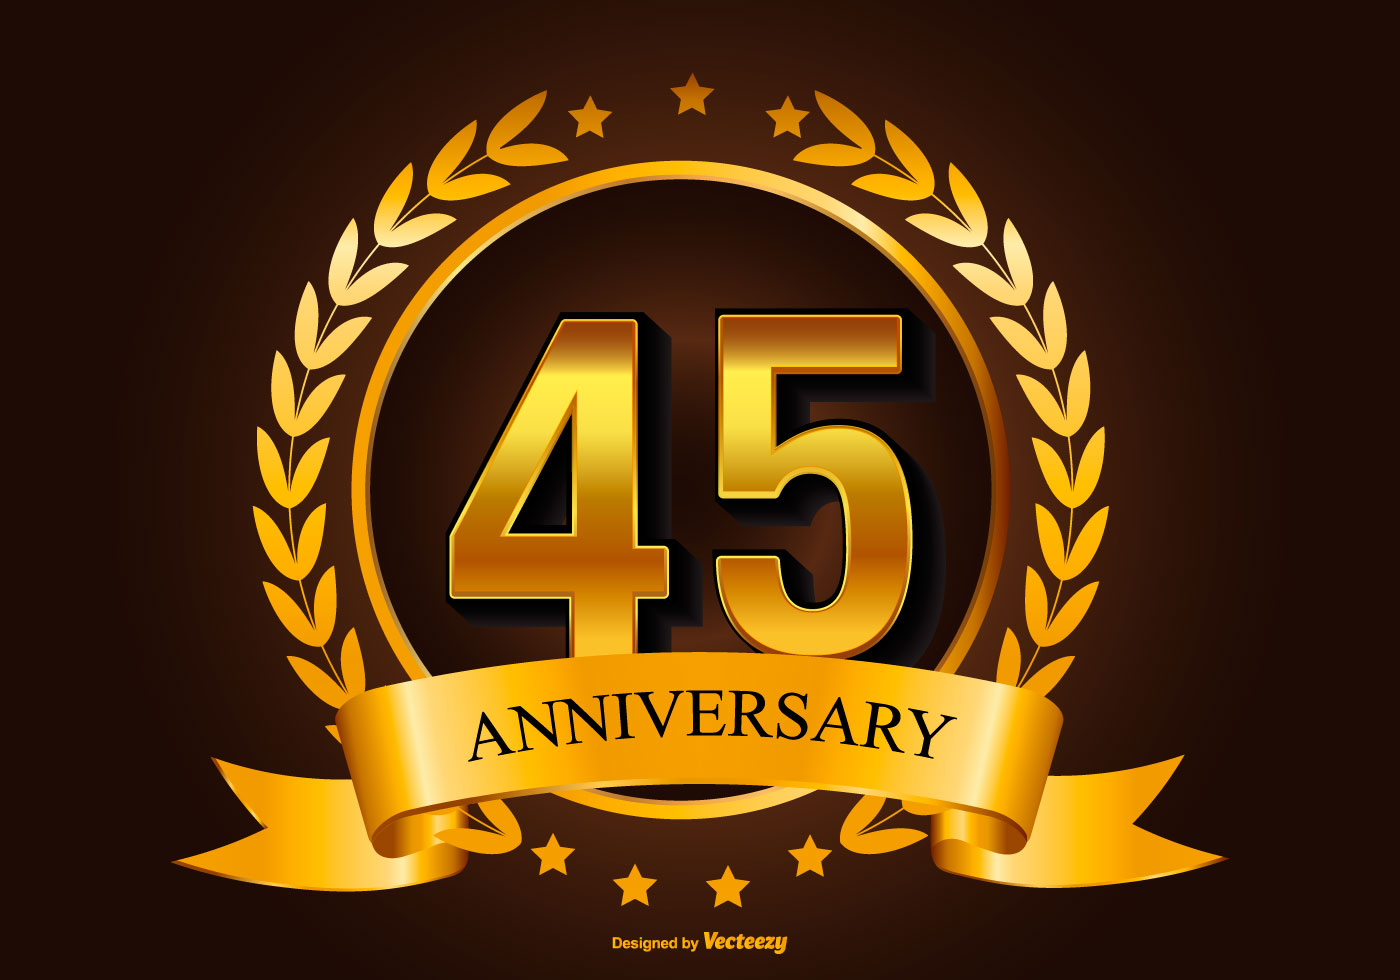 Beautiful 45th anniversary illustration download free vector art stock graphics images - Th anniversary symbol ...